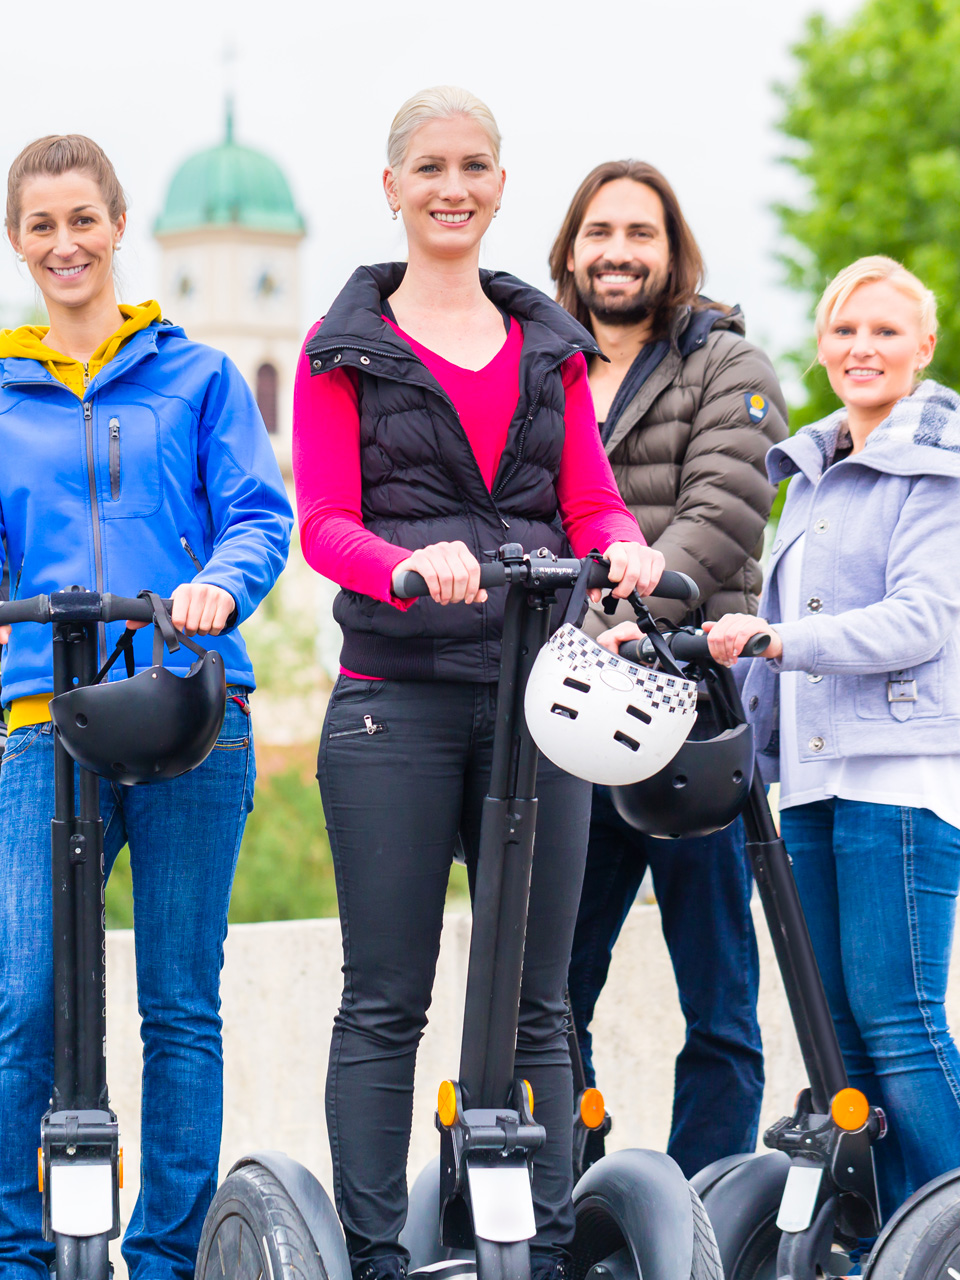 Lunch Time Segway Adventure Ride - Starts at 1:00pm